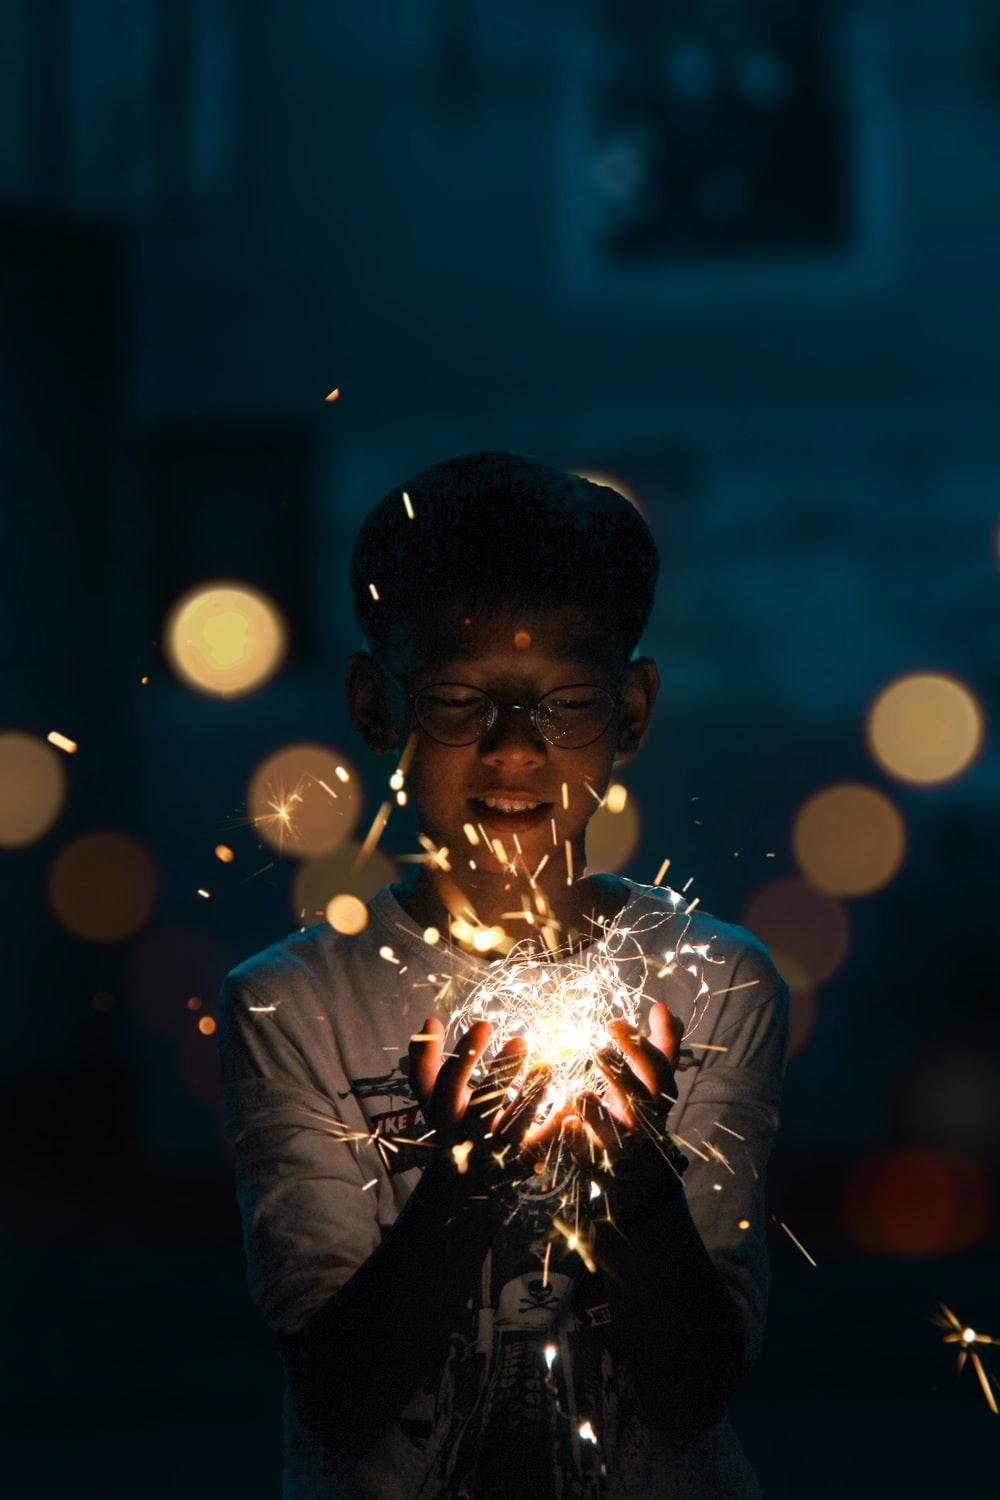 boy holding lighting crackers